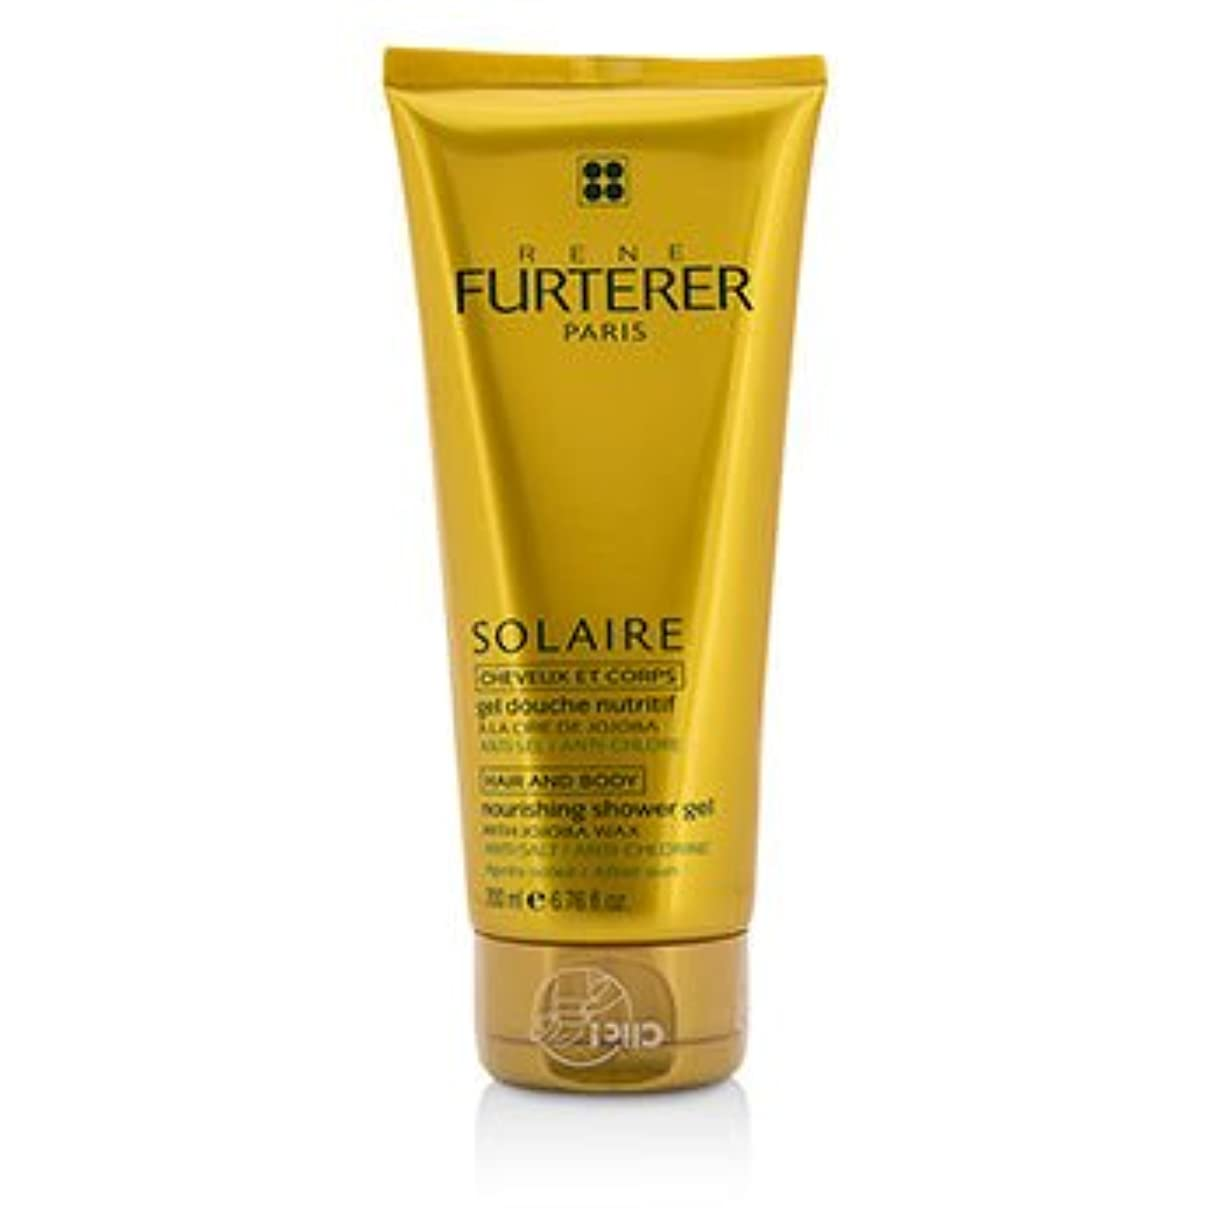 盗賊トンネルバン[Rene Furterer] Solaire Nourishing Shower Gel with Jojoba Wax (Hair and Body) 200ml/6.76oz